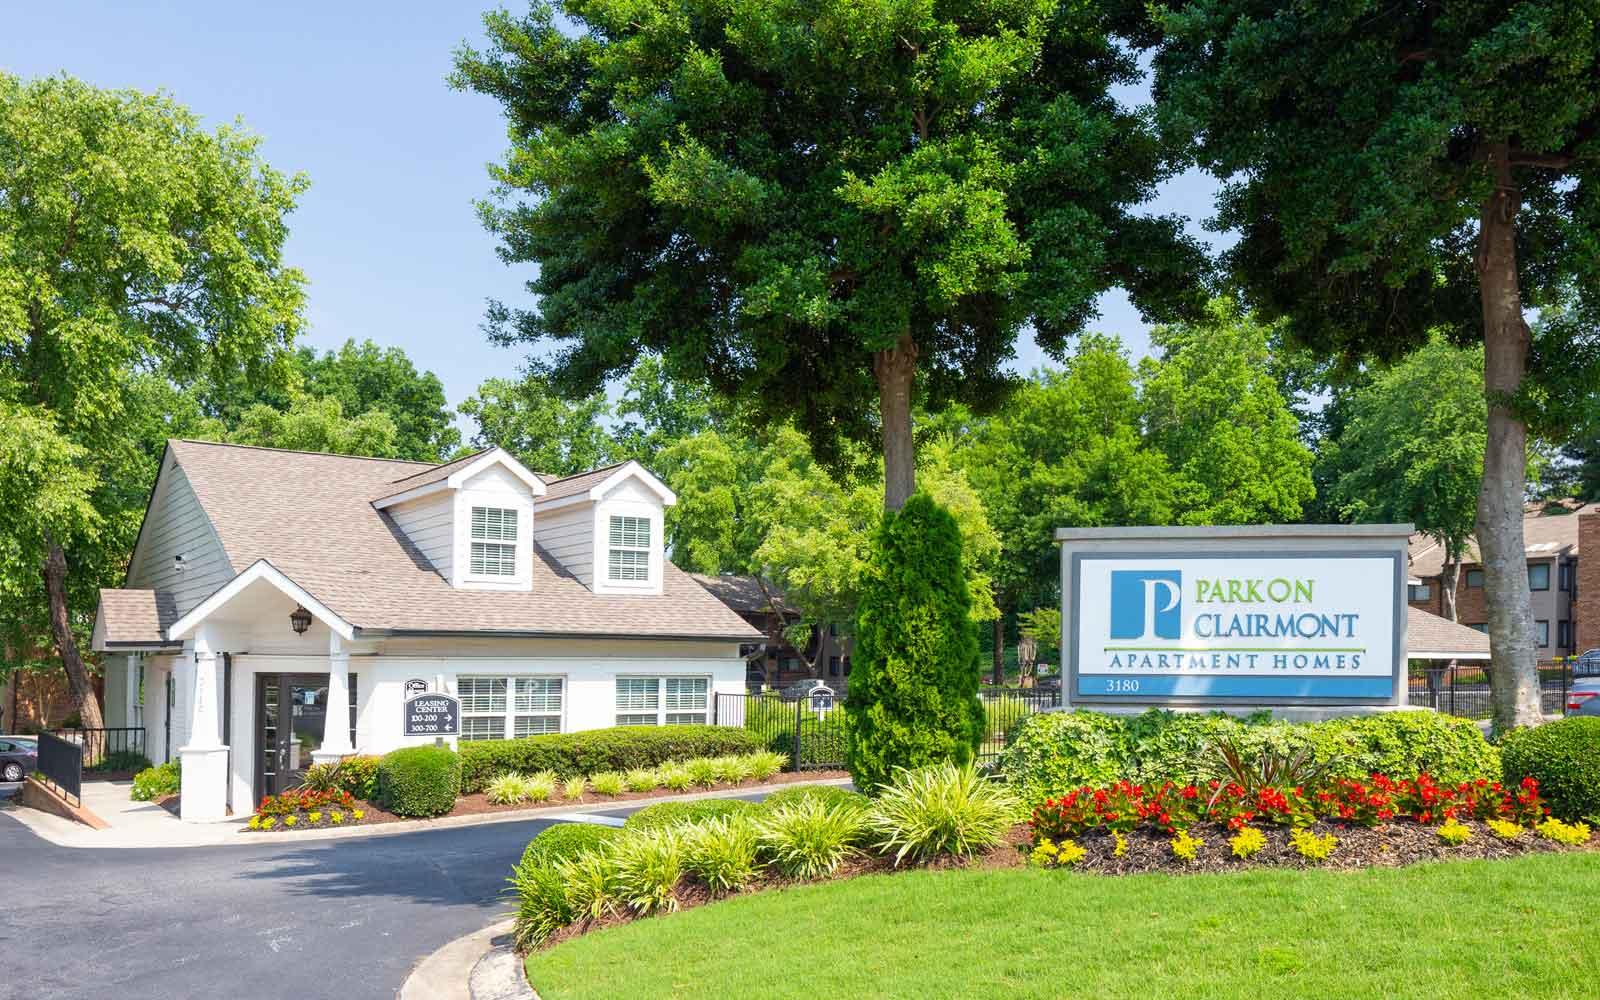 Park on Clairmont Apartments for real estate